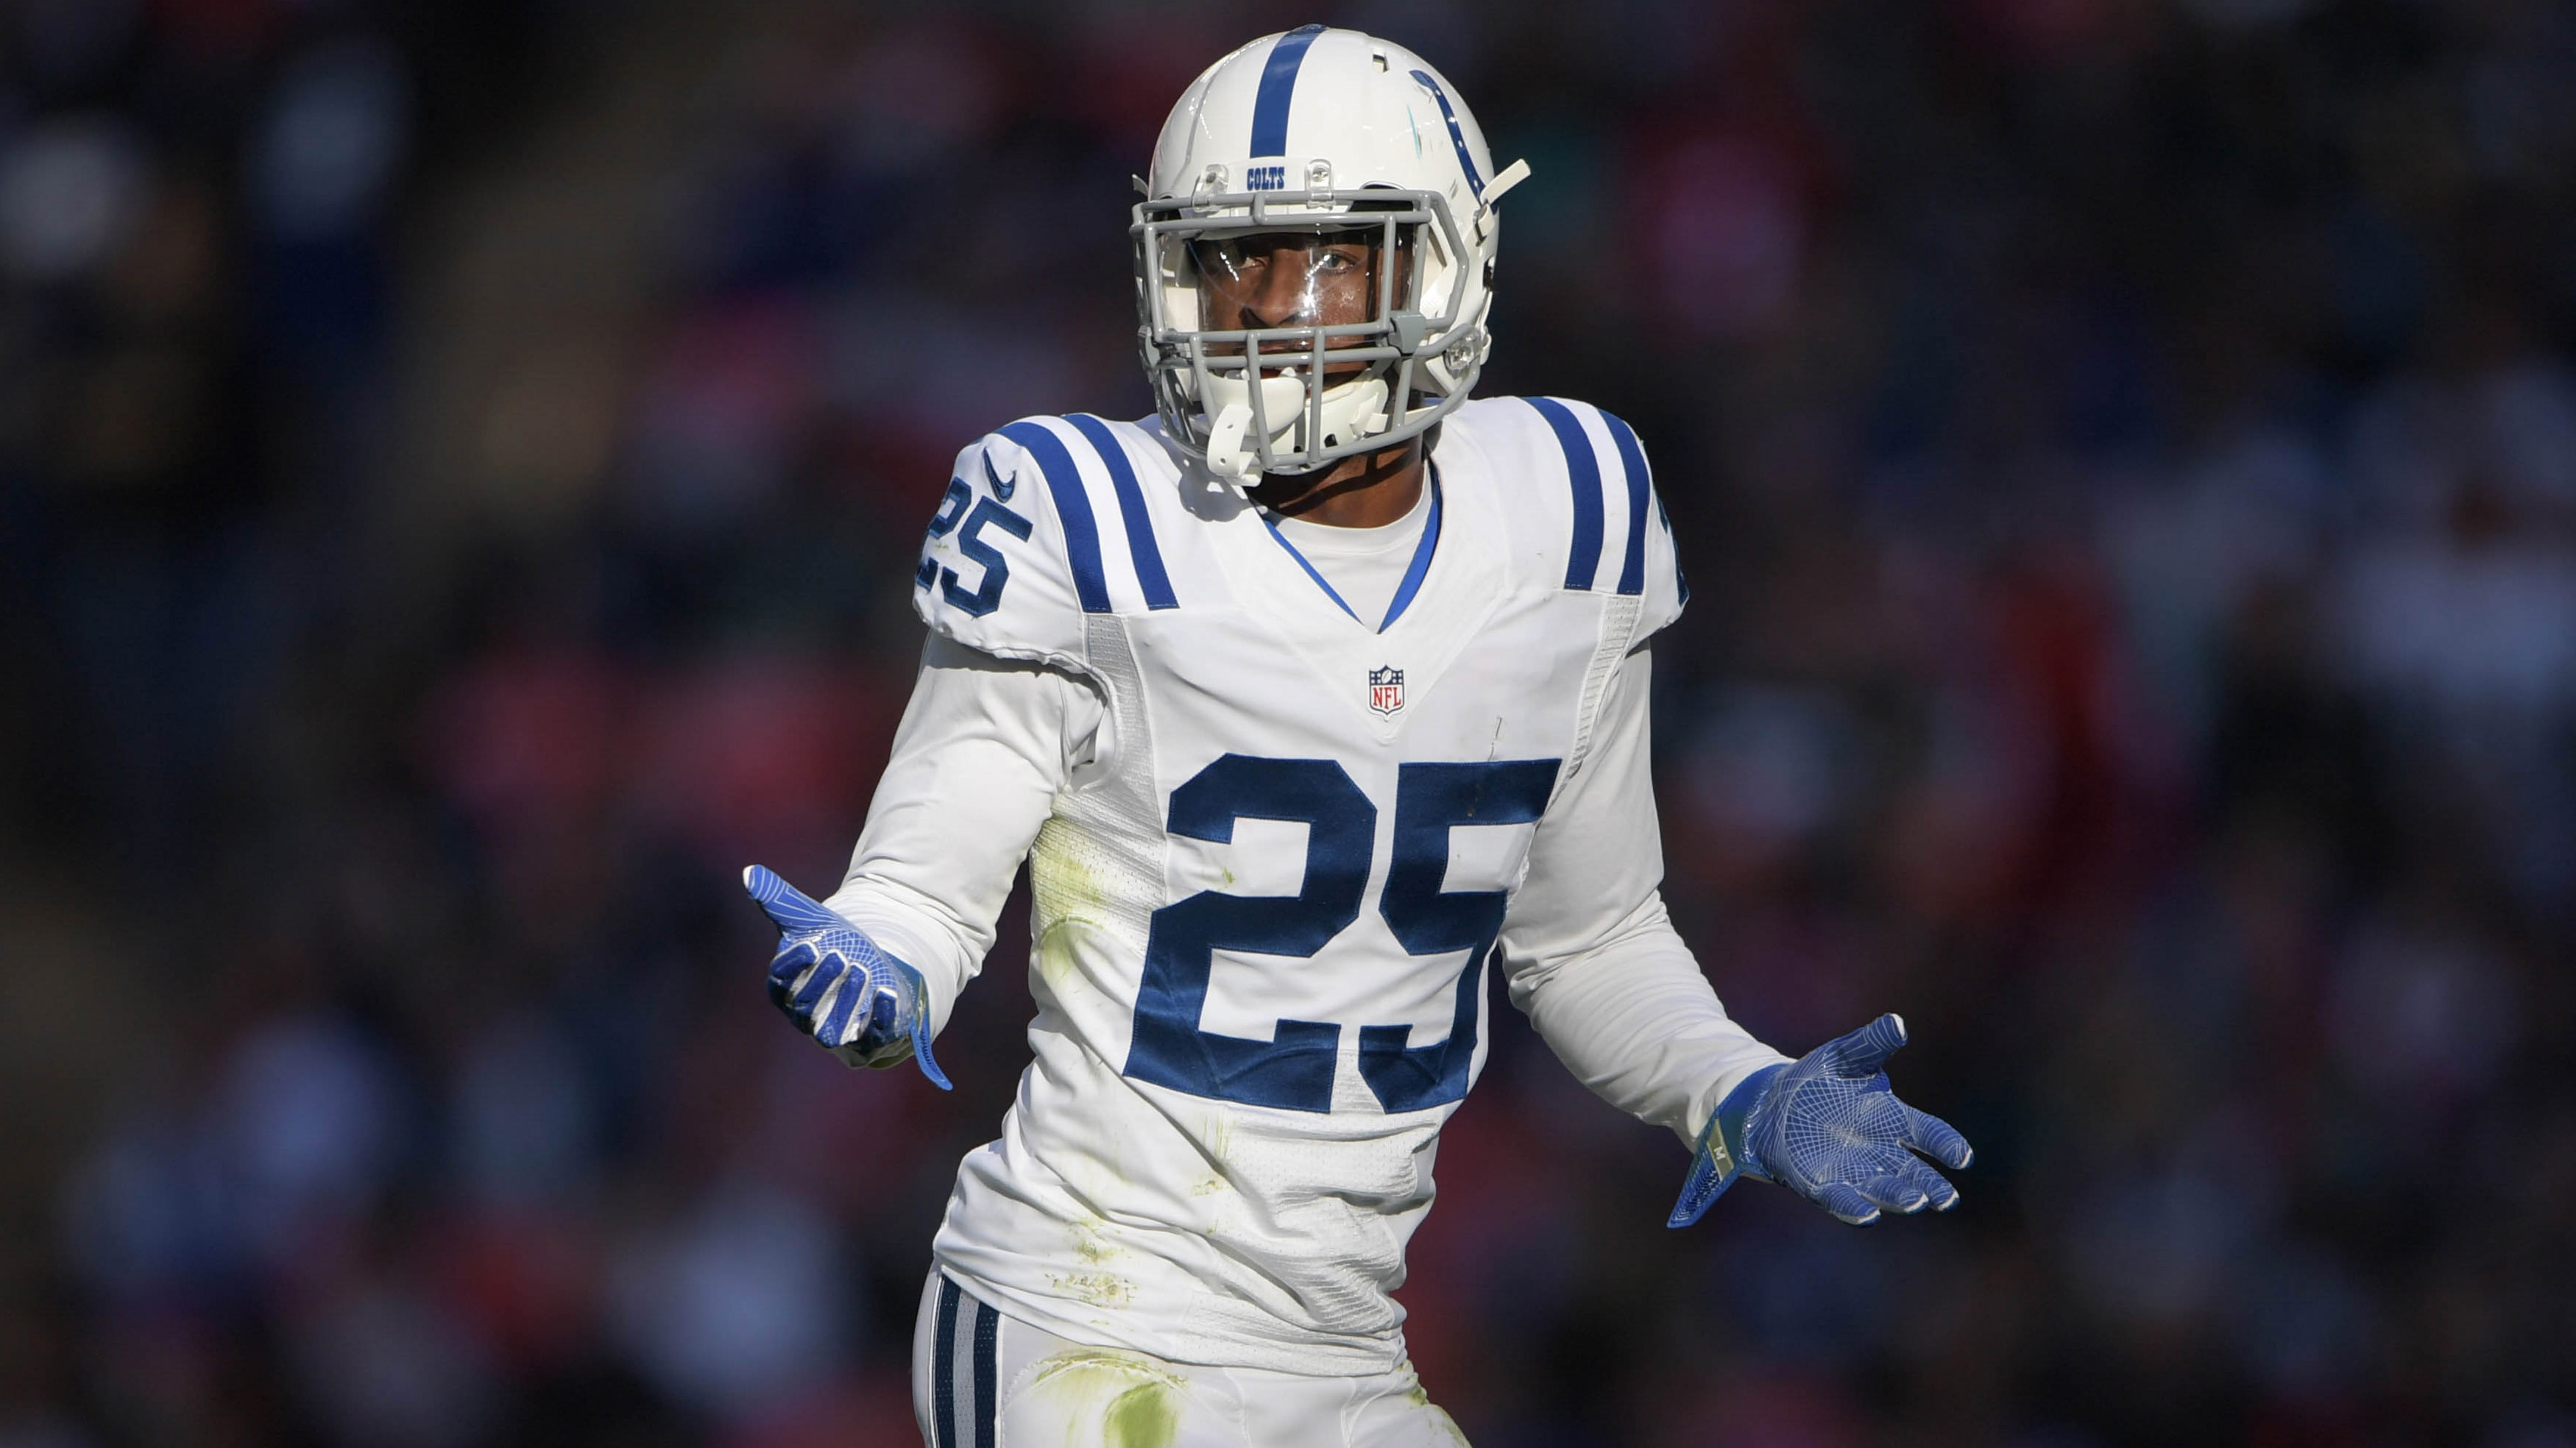 Colts cut CB Patrick Robinson